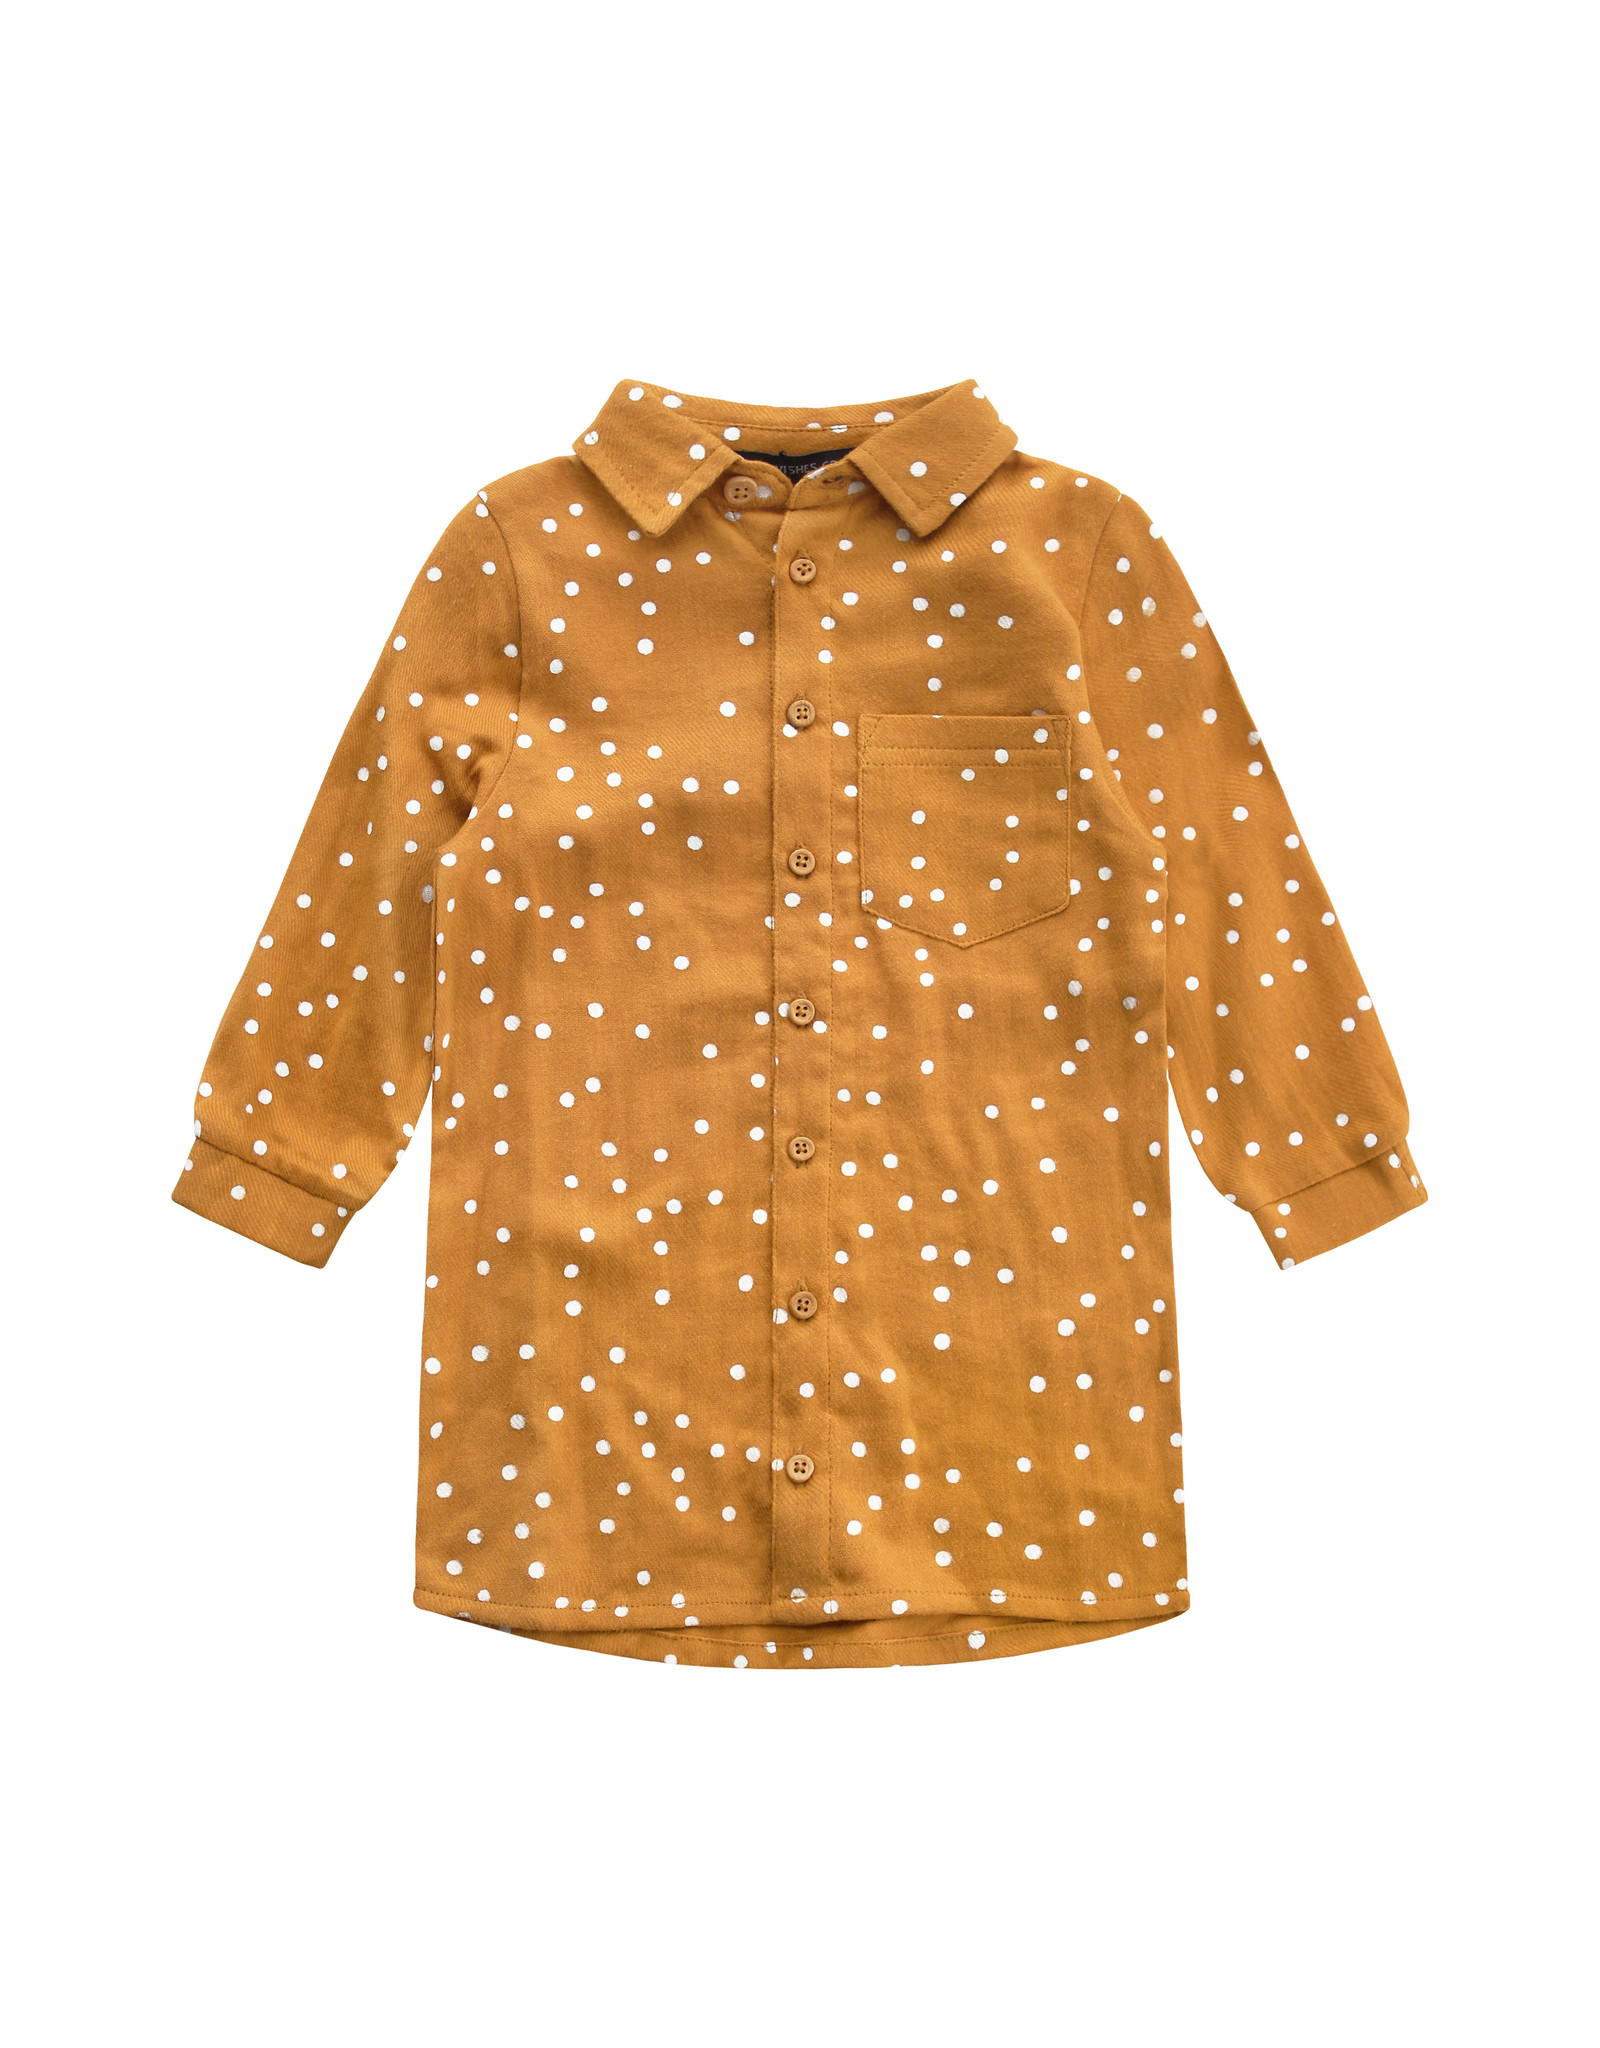 Your Wishes YW | Confetti | Blouse Dress | Gold